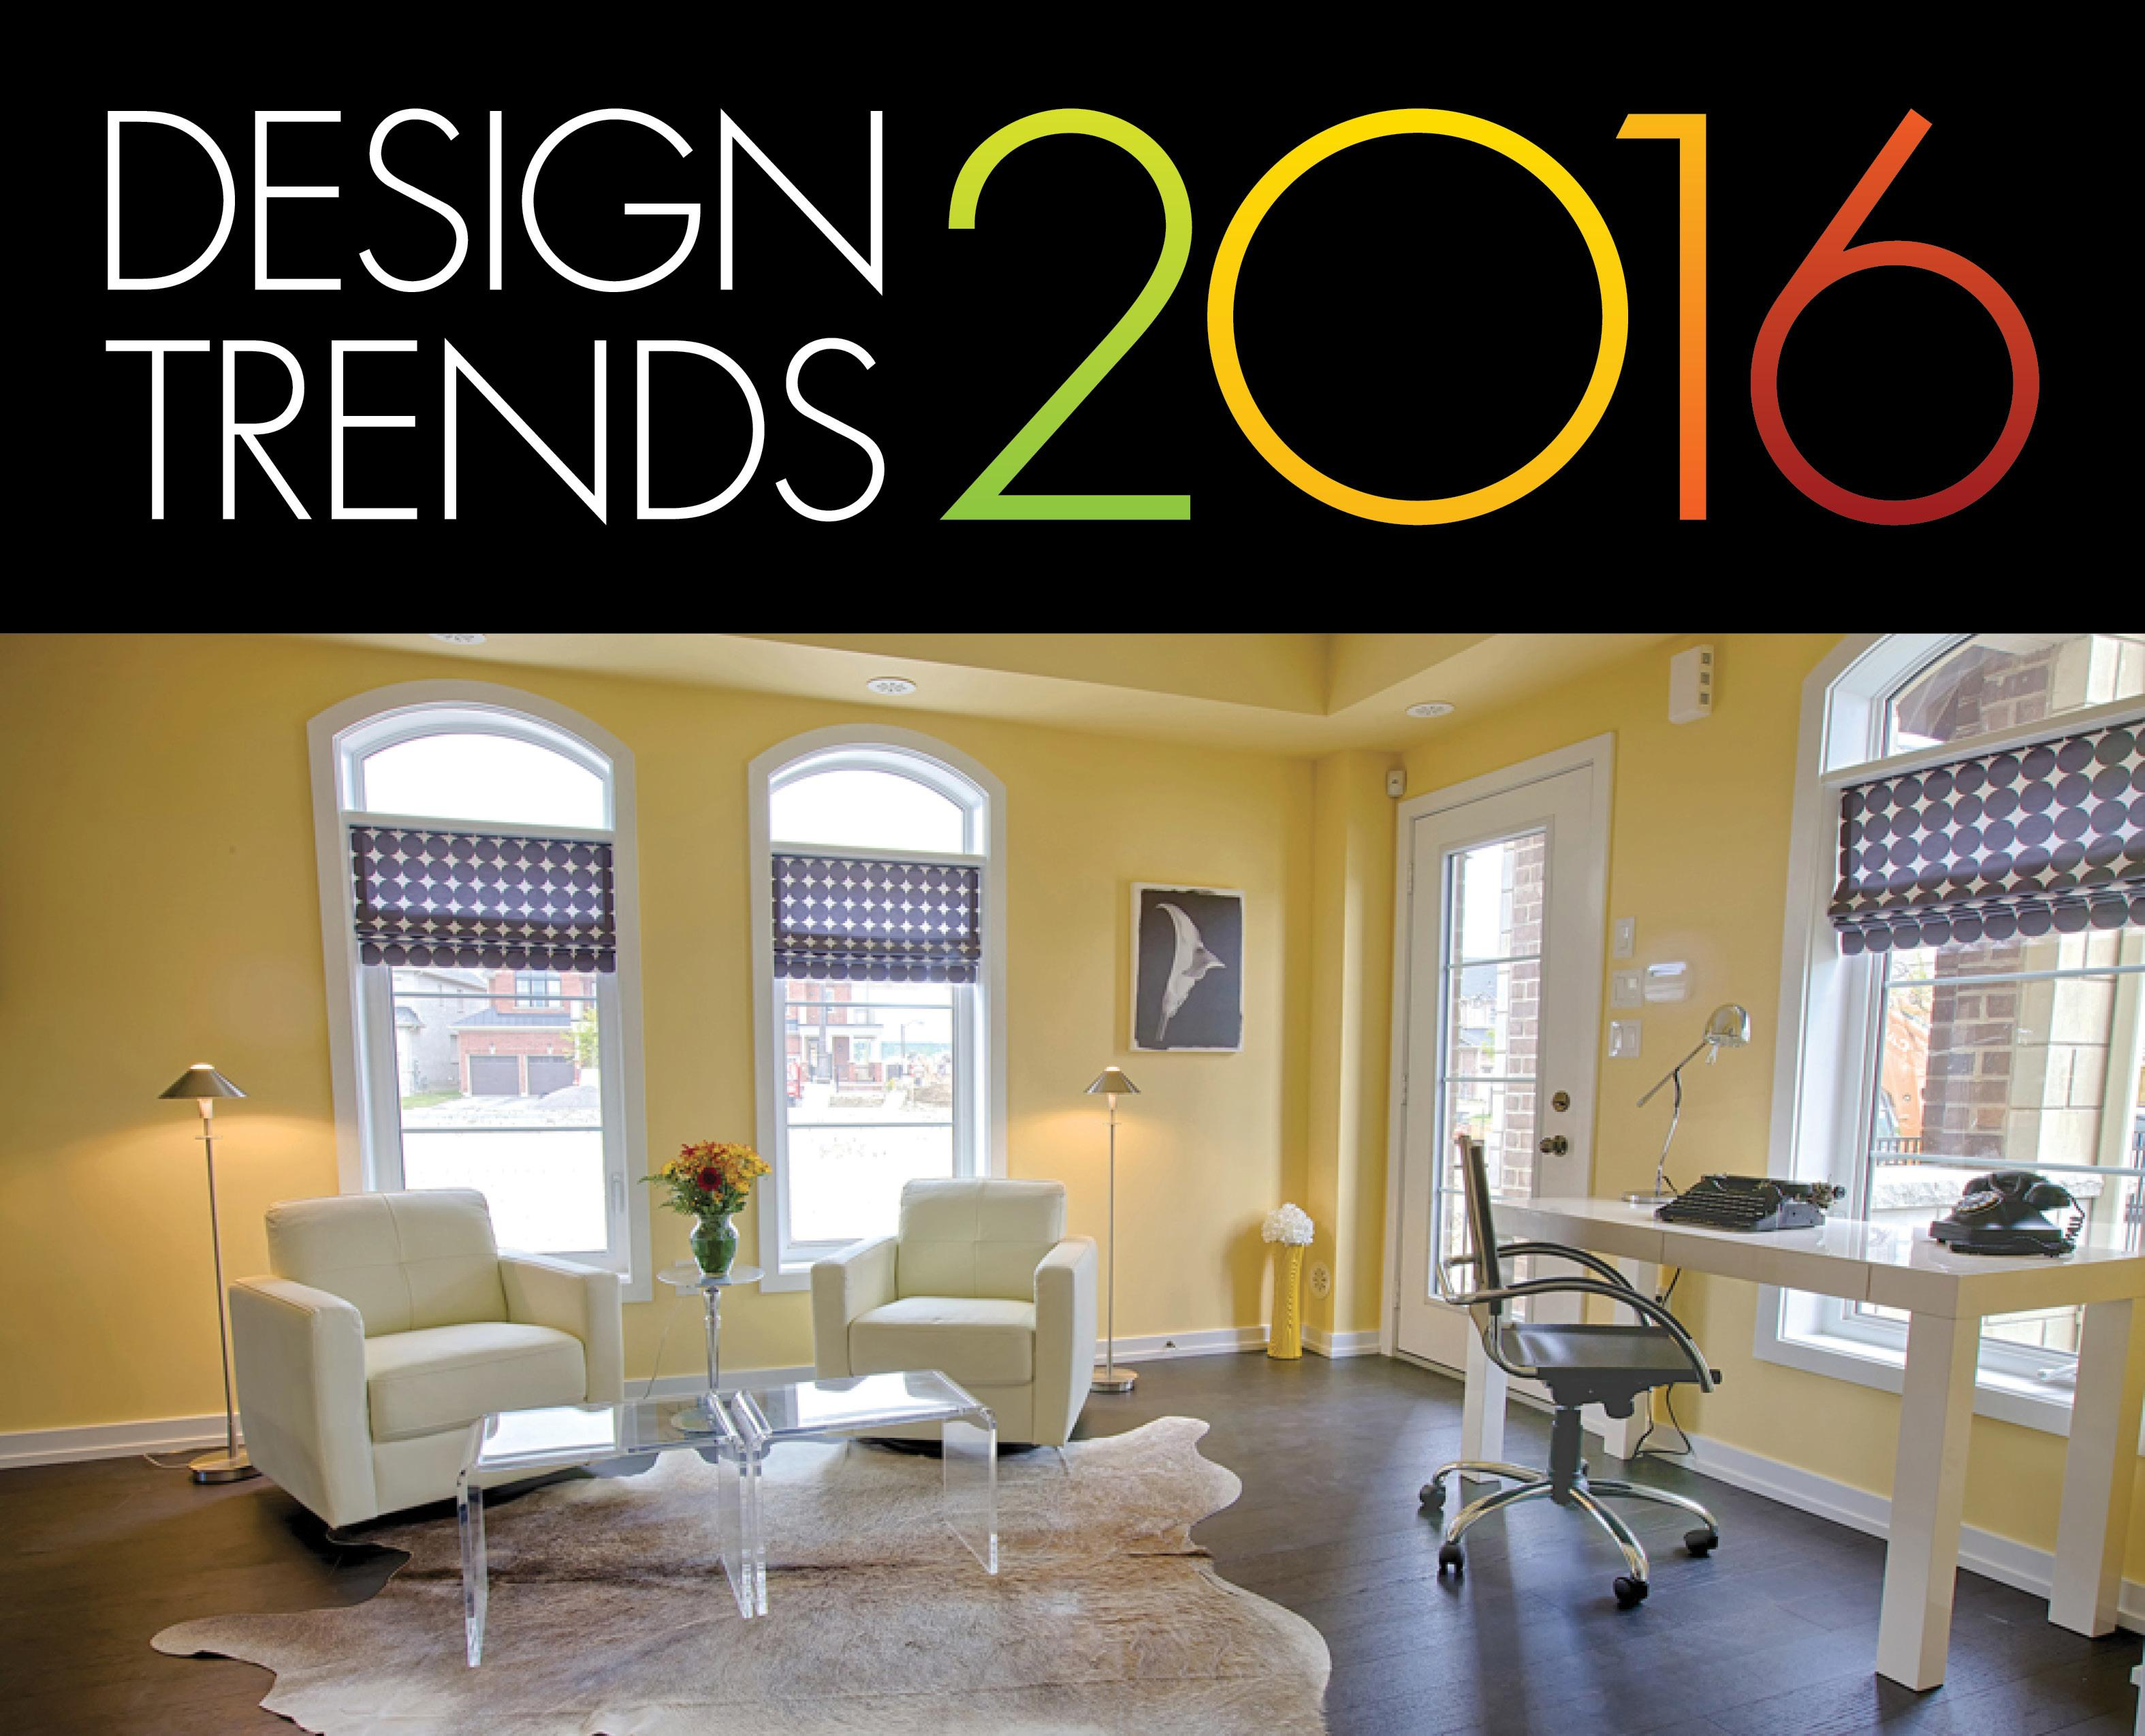 36 Most Popular Cool Design Trends That Will Fit In Any Interior Style Trends For 2020 Stunning Photos Decoratorist